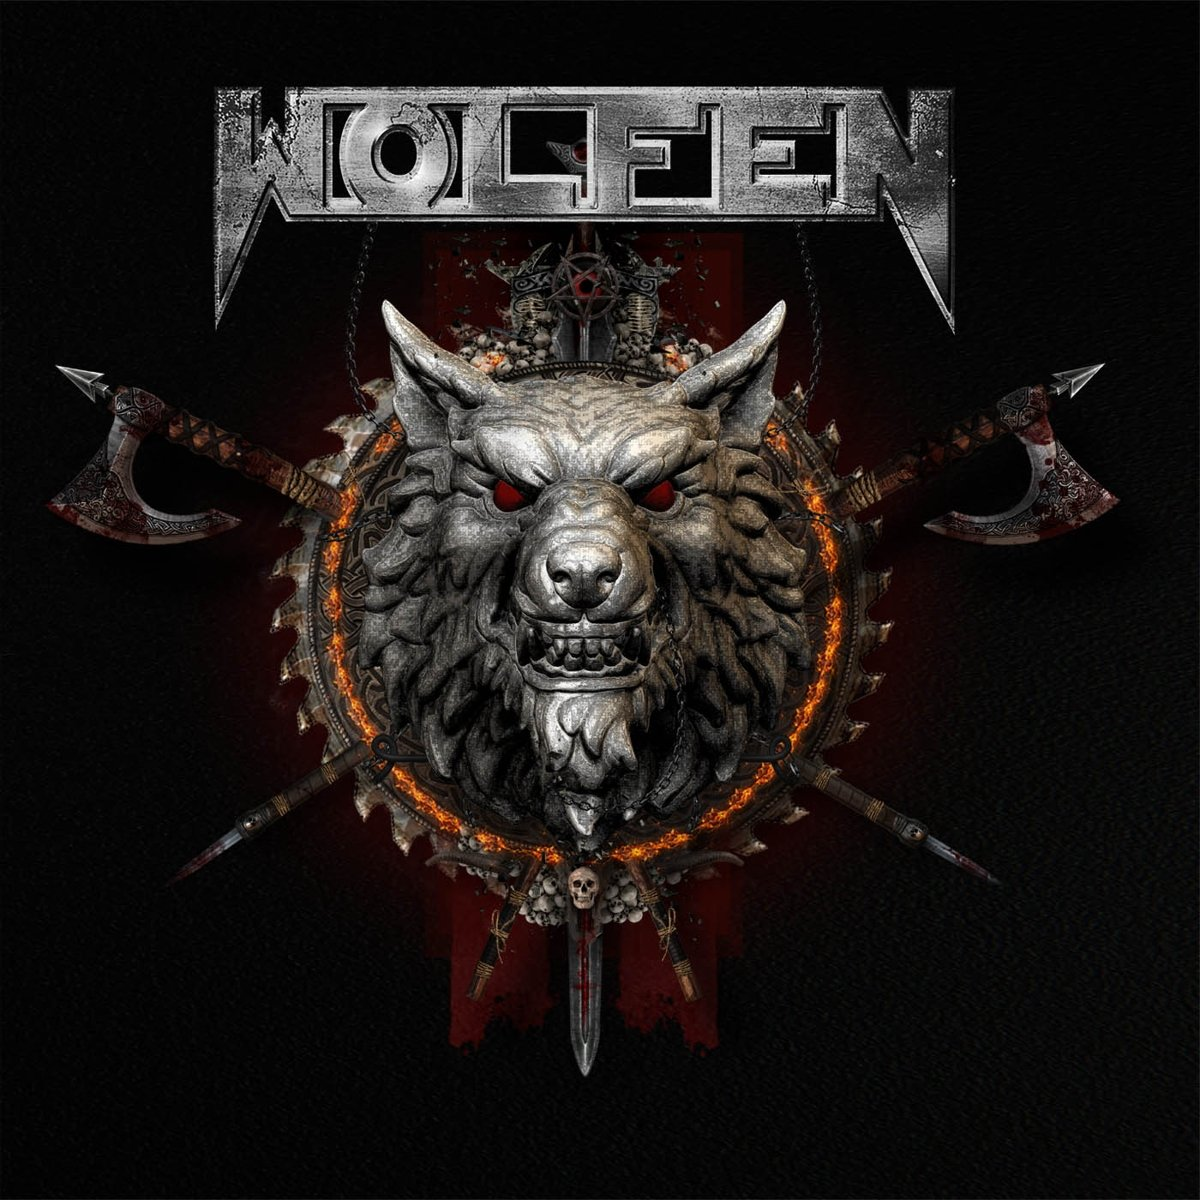 19 – Wolfen – Forgotten Dreams